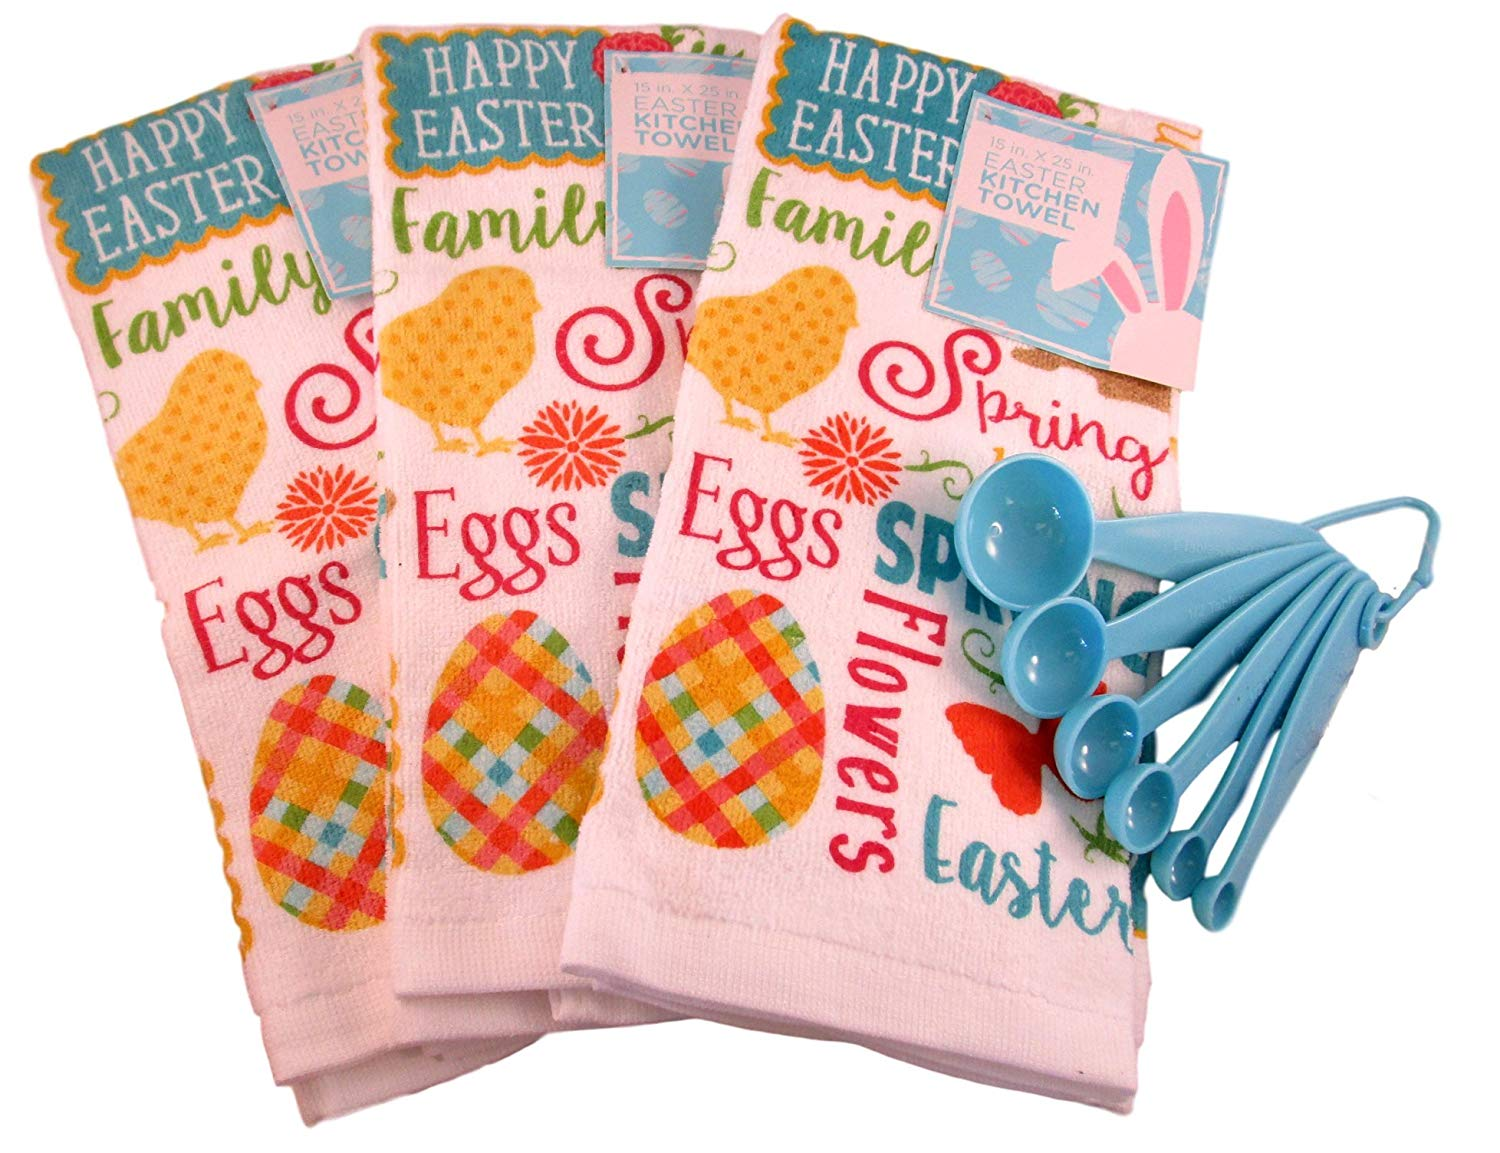 "100% Cotton Easter Springtime Kitchen Towels Bundle of 4 Items: 3 15"" X 25"" Towels and set of Measuring Spoons (Happy Easter Print and Images)"